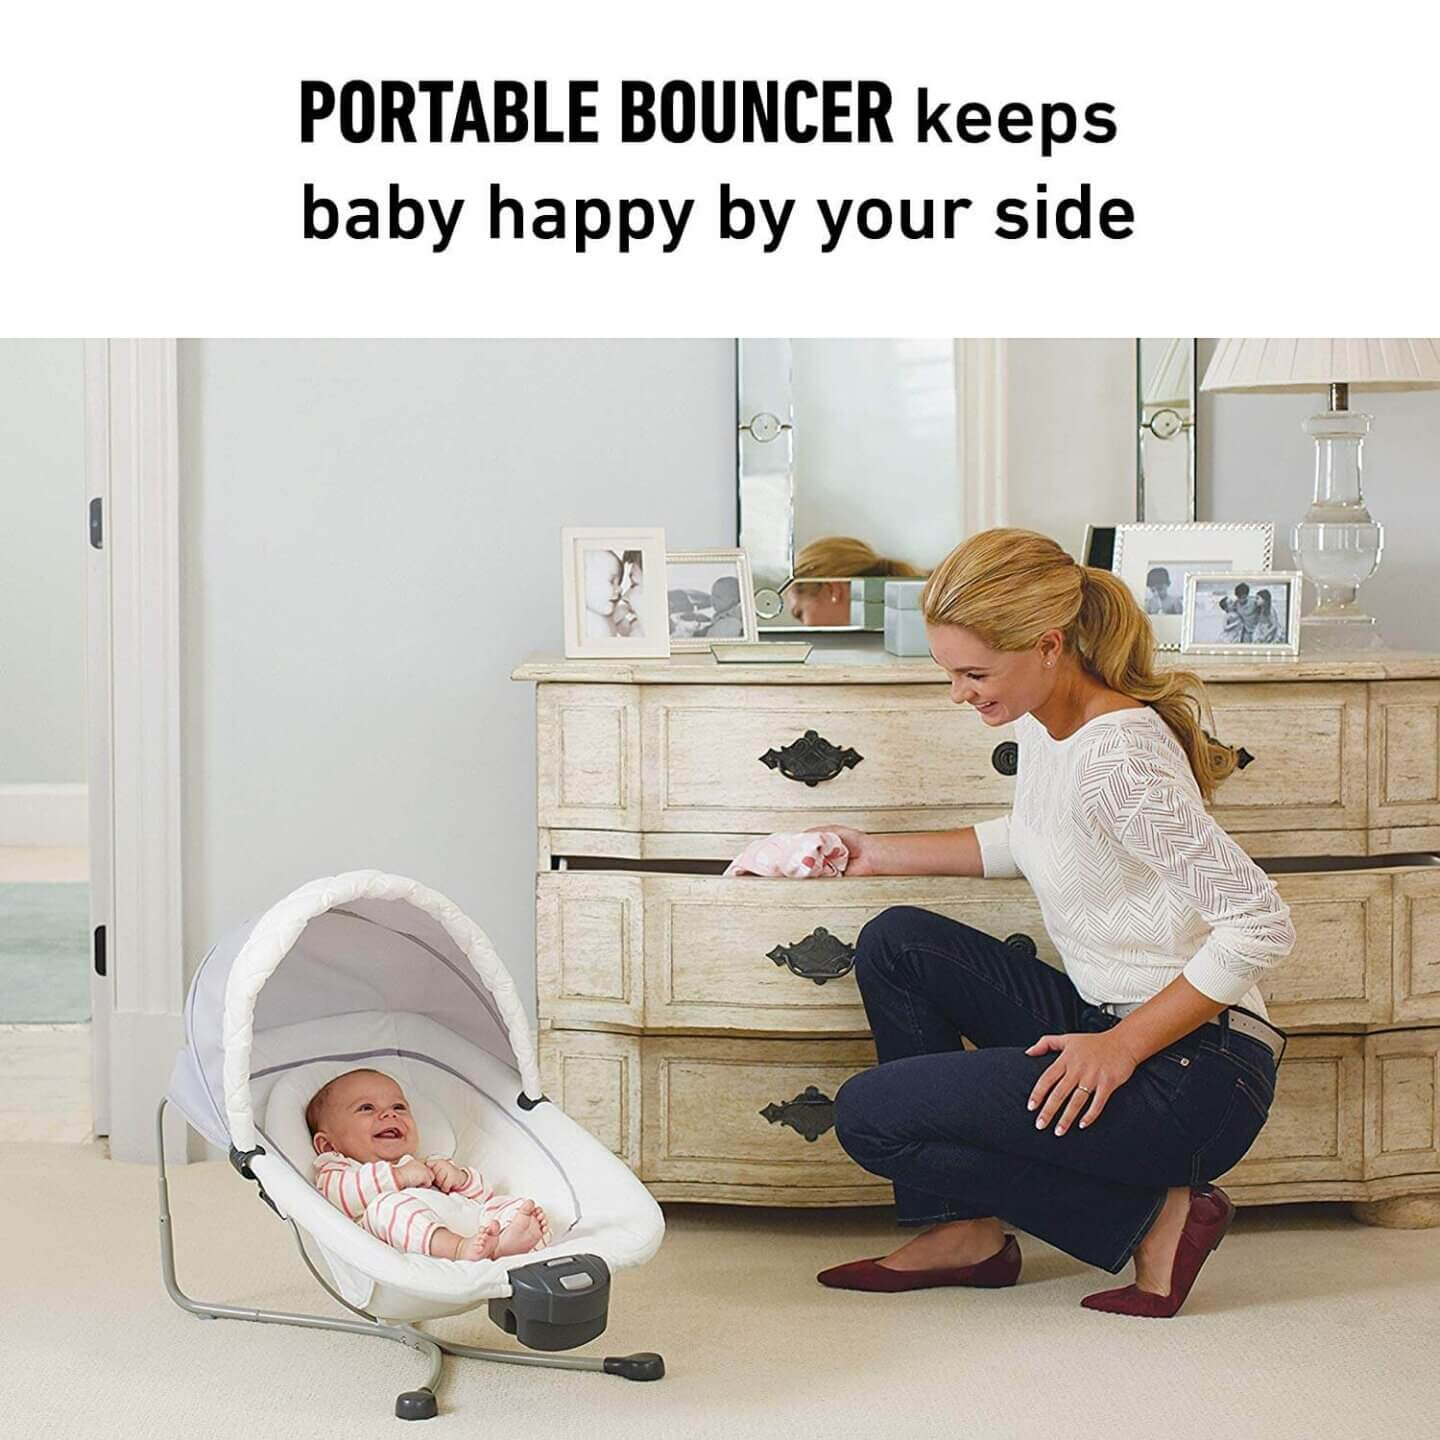 Gaco Pack n'  Play Quick Connect Playard with Portable Bouncer. Great to keep your baby entertained and safe during quarantine lockdown